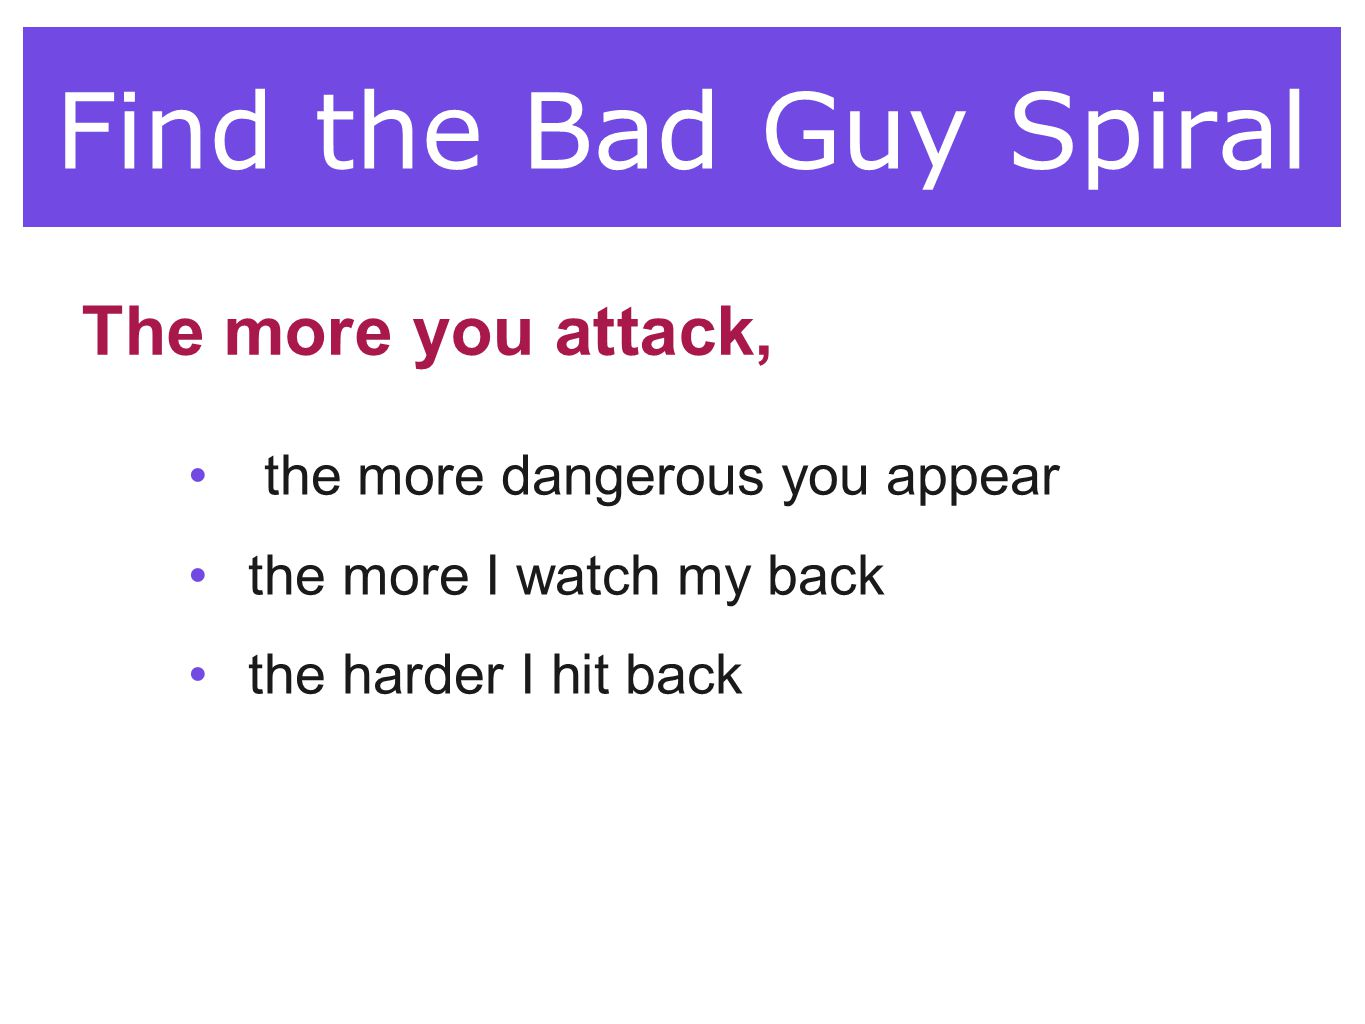 Find the Bad Guy Spiral the more dangerous you appear the more I watch my back the harder I hit back The more you attack,